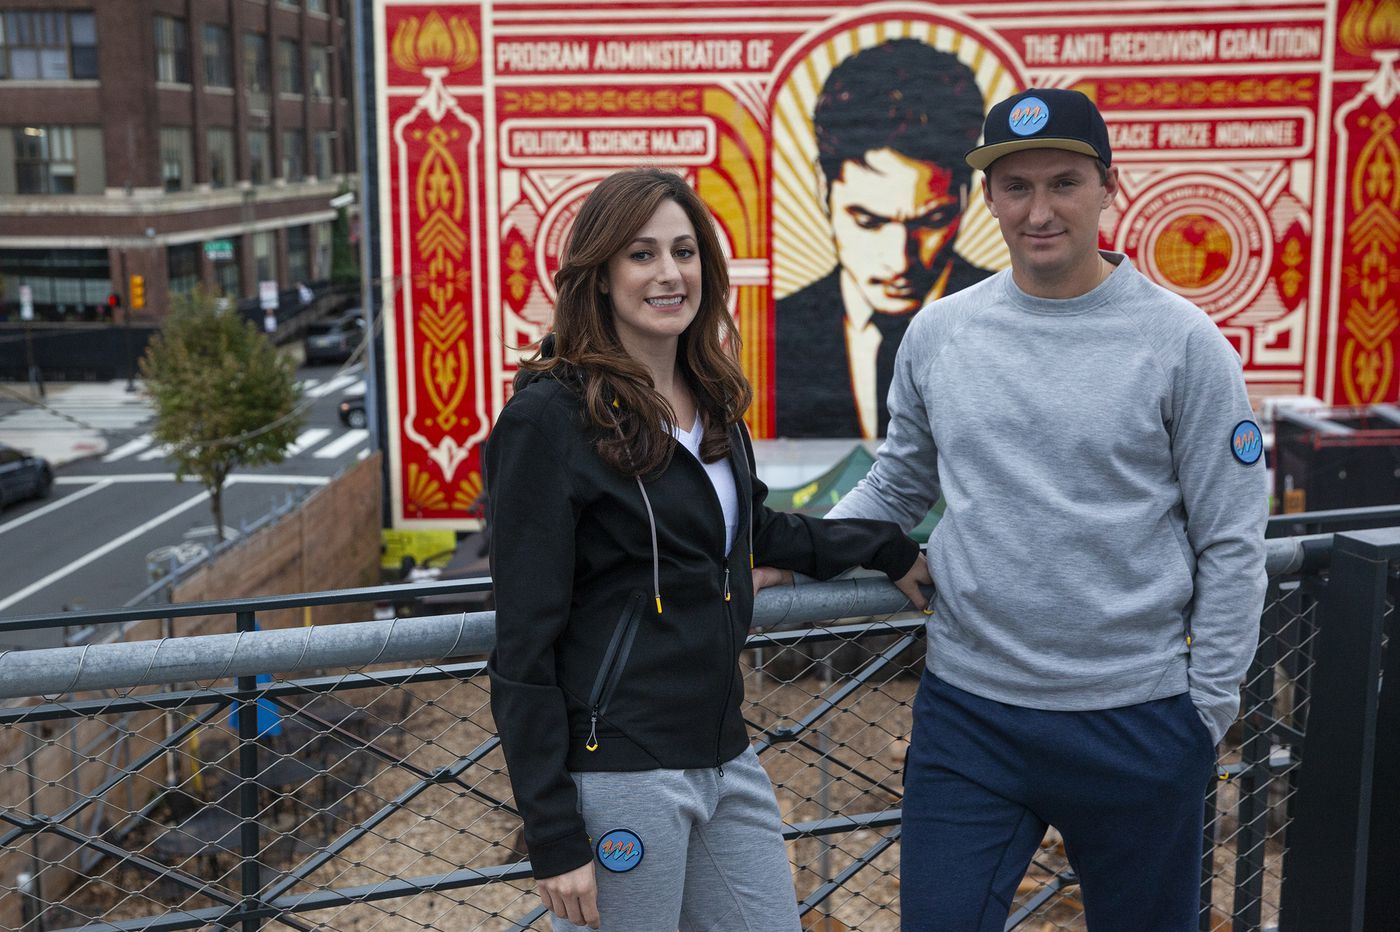 Larkshead is a Philly athletic apparel start-up that wants you to own less apparel